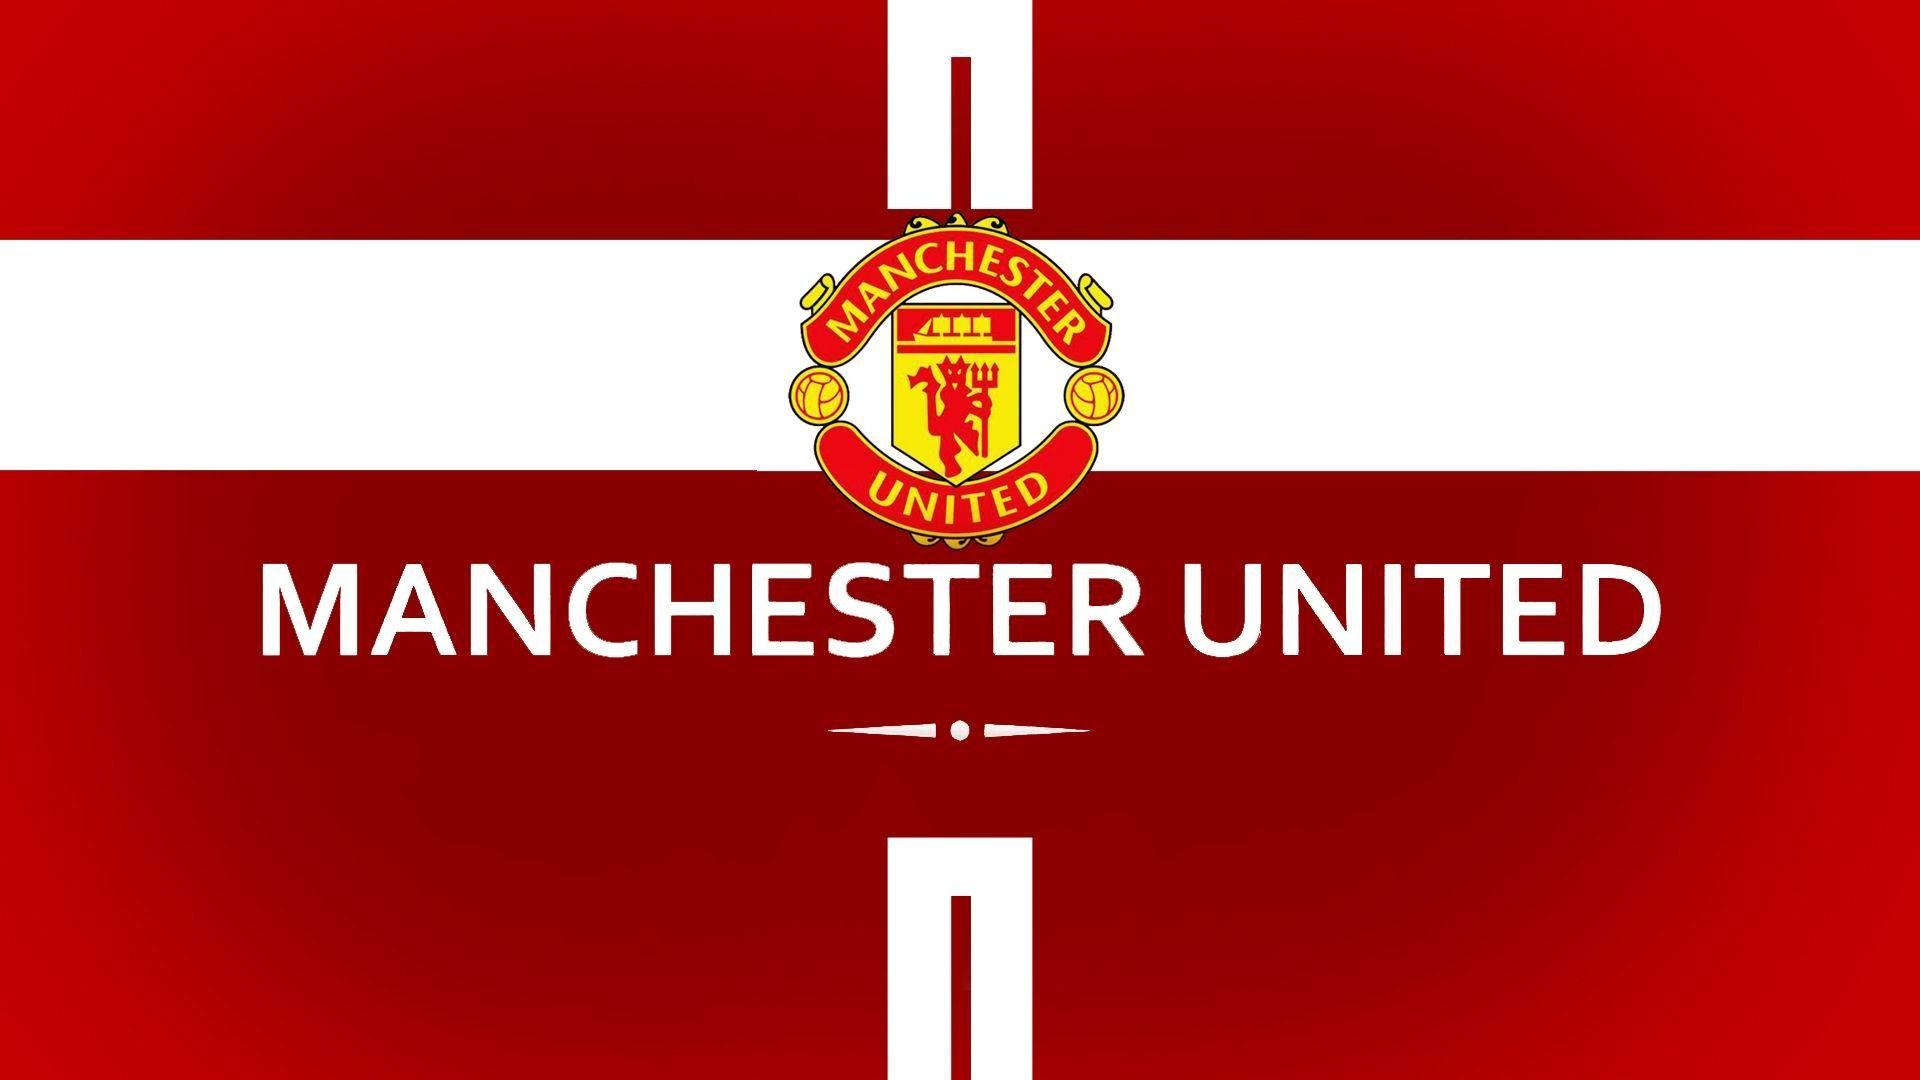 Manchester United Logo Wallpapers | HD Wallpapers, Backgrounds ...